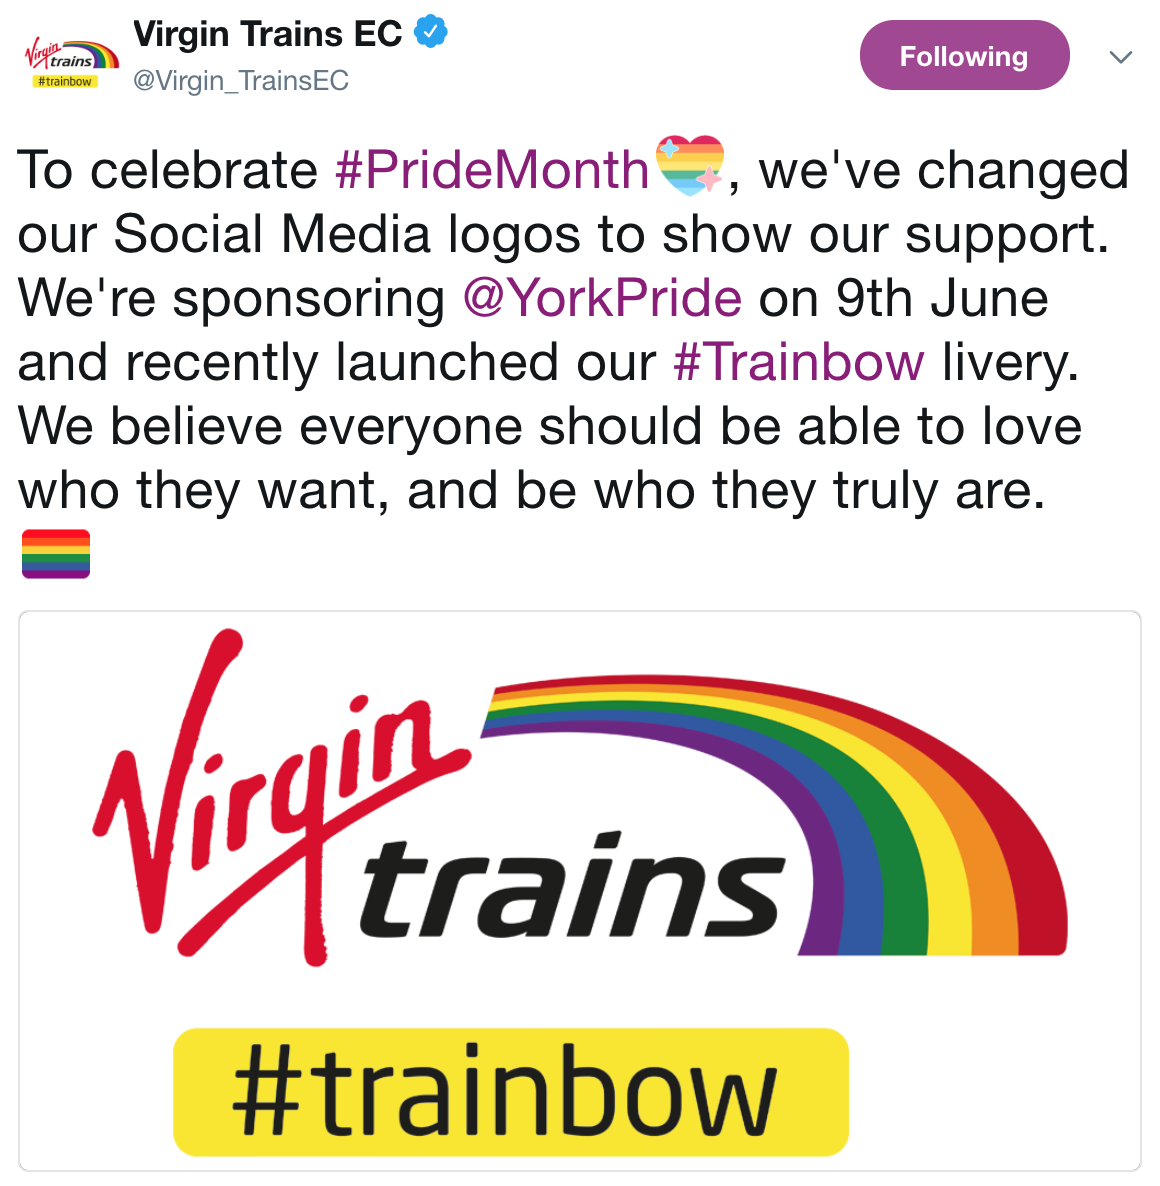 To celebrate #PrideMonth, we've changed our Social Media logos to show our support. We're sponsoring @YorkPride on 9th June and recently launched our #Trainbow livery. We believe everyone should be able to love who they want, and be who they truly are.